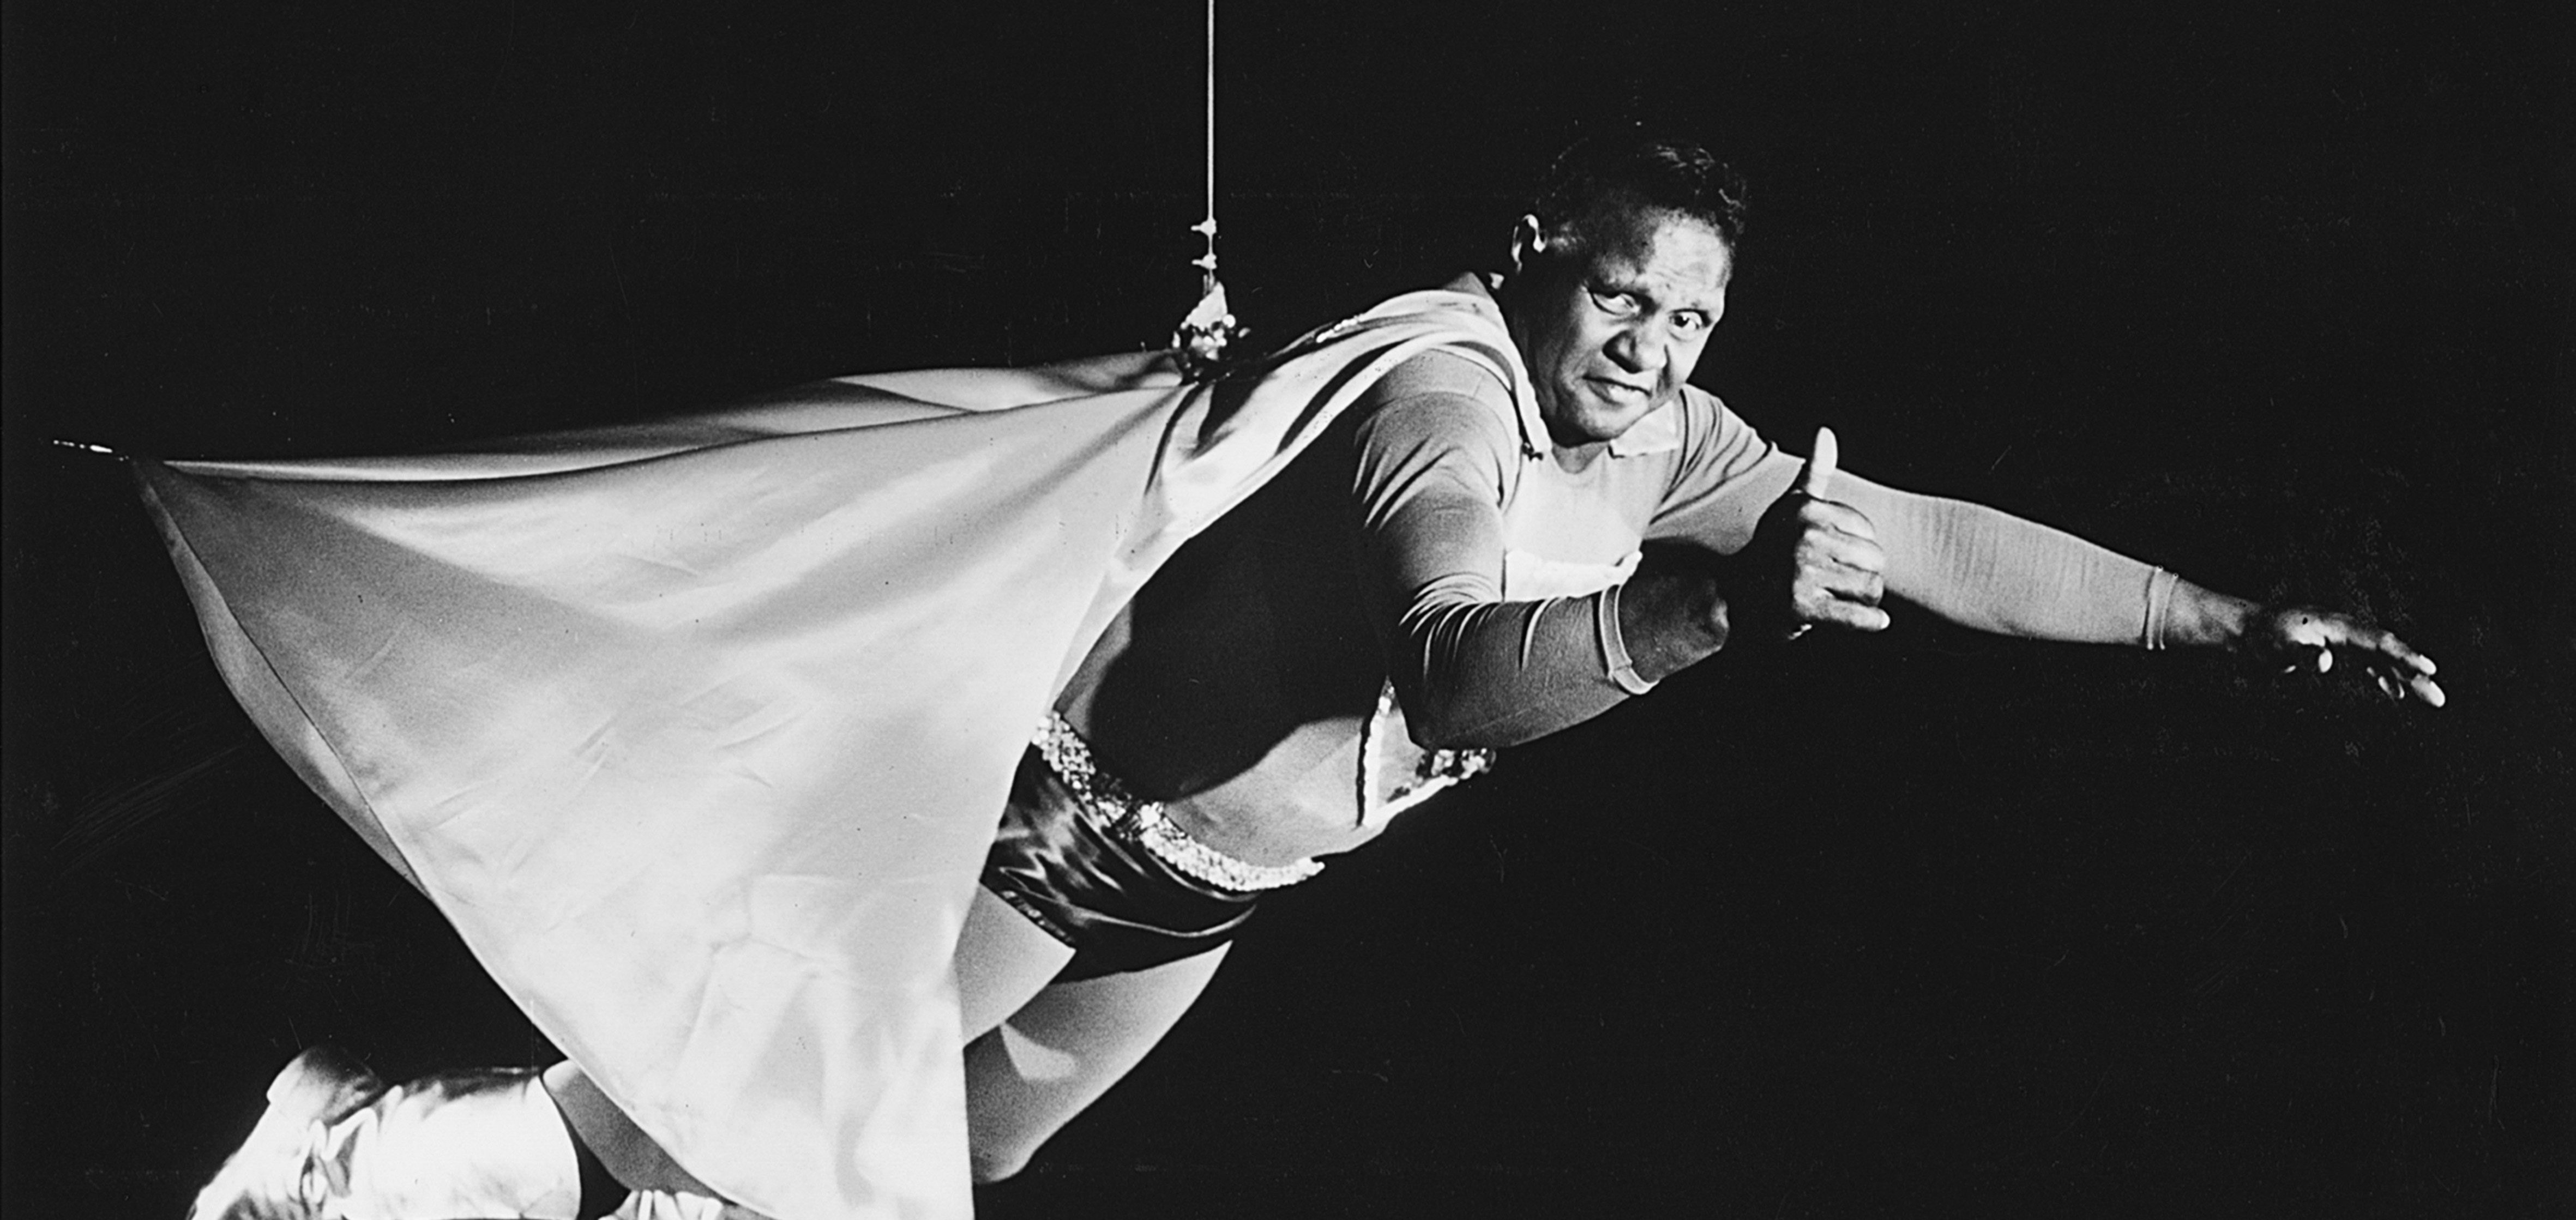 Zac Martin in a superhero costume being held up by a wire in a still from 'Basically Black' (1973)